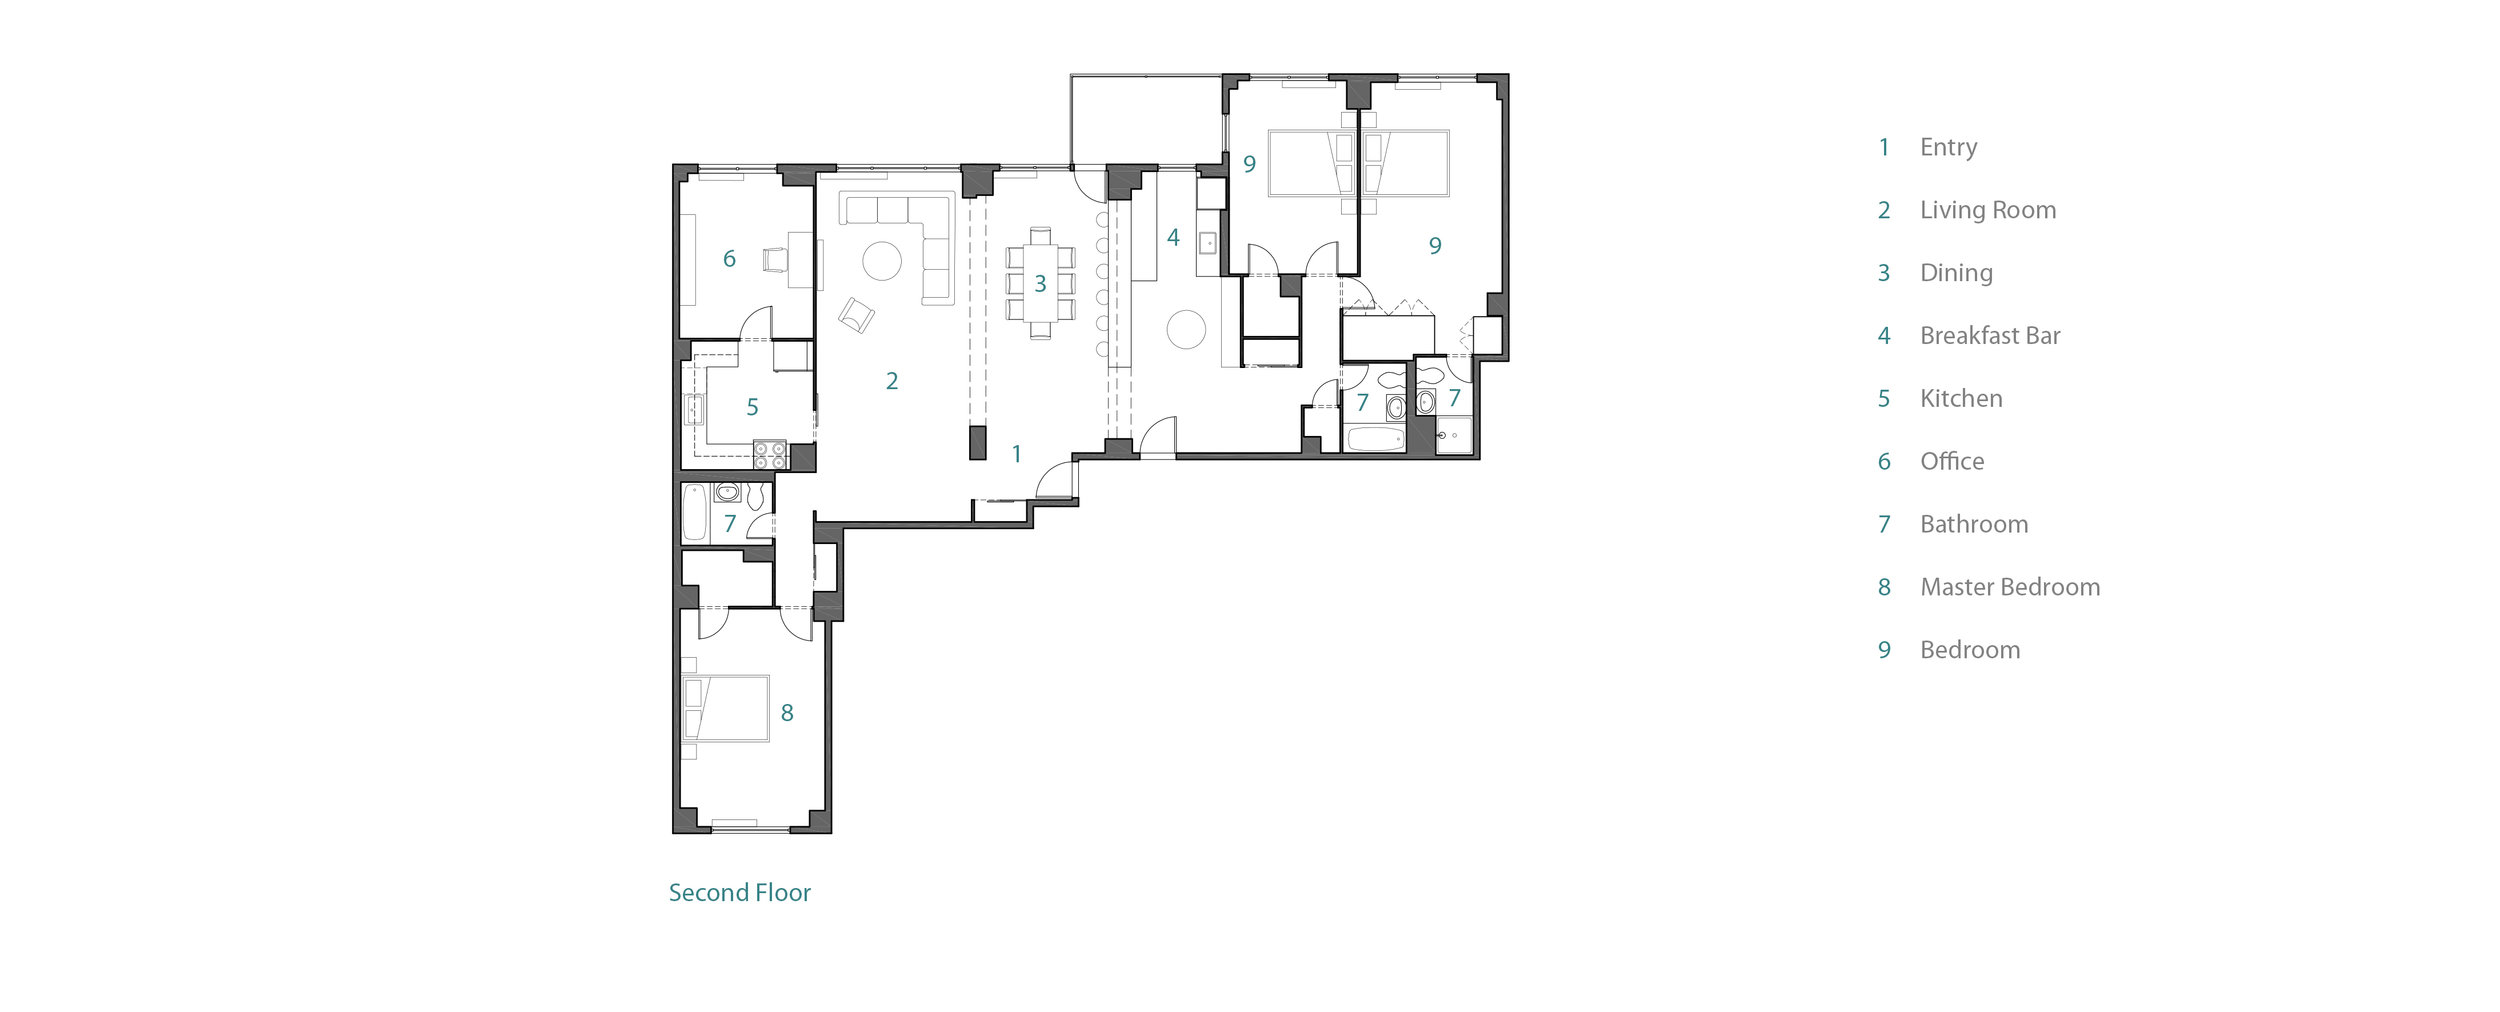 Base Floor Plan 2100x850.jpg